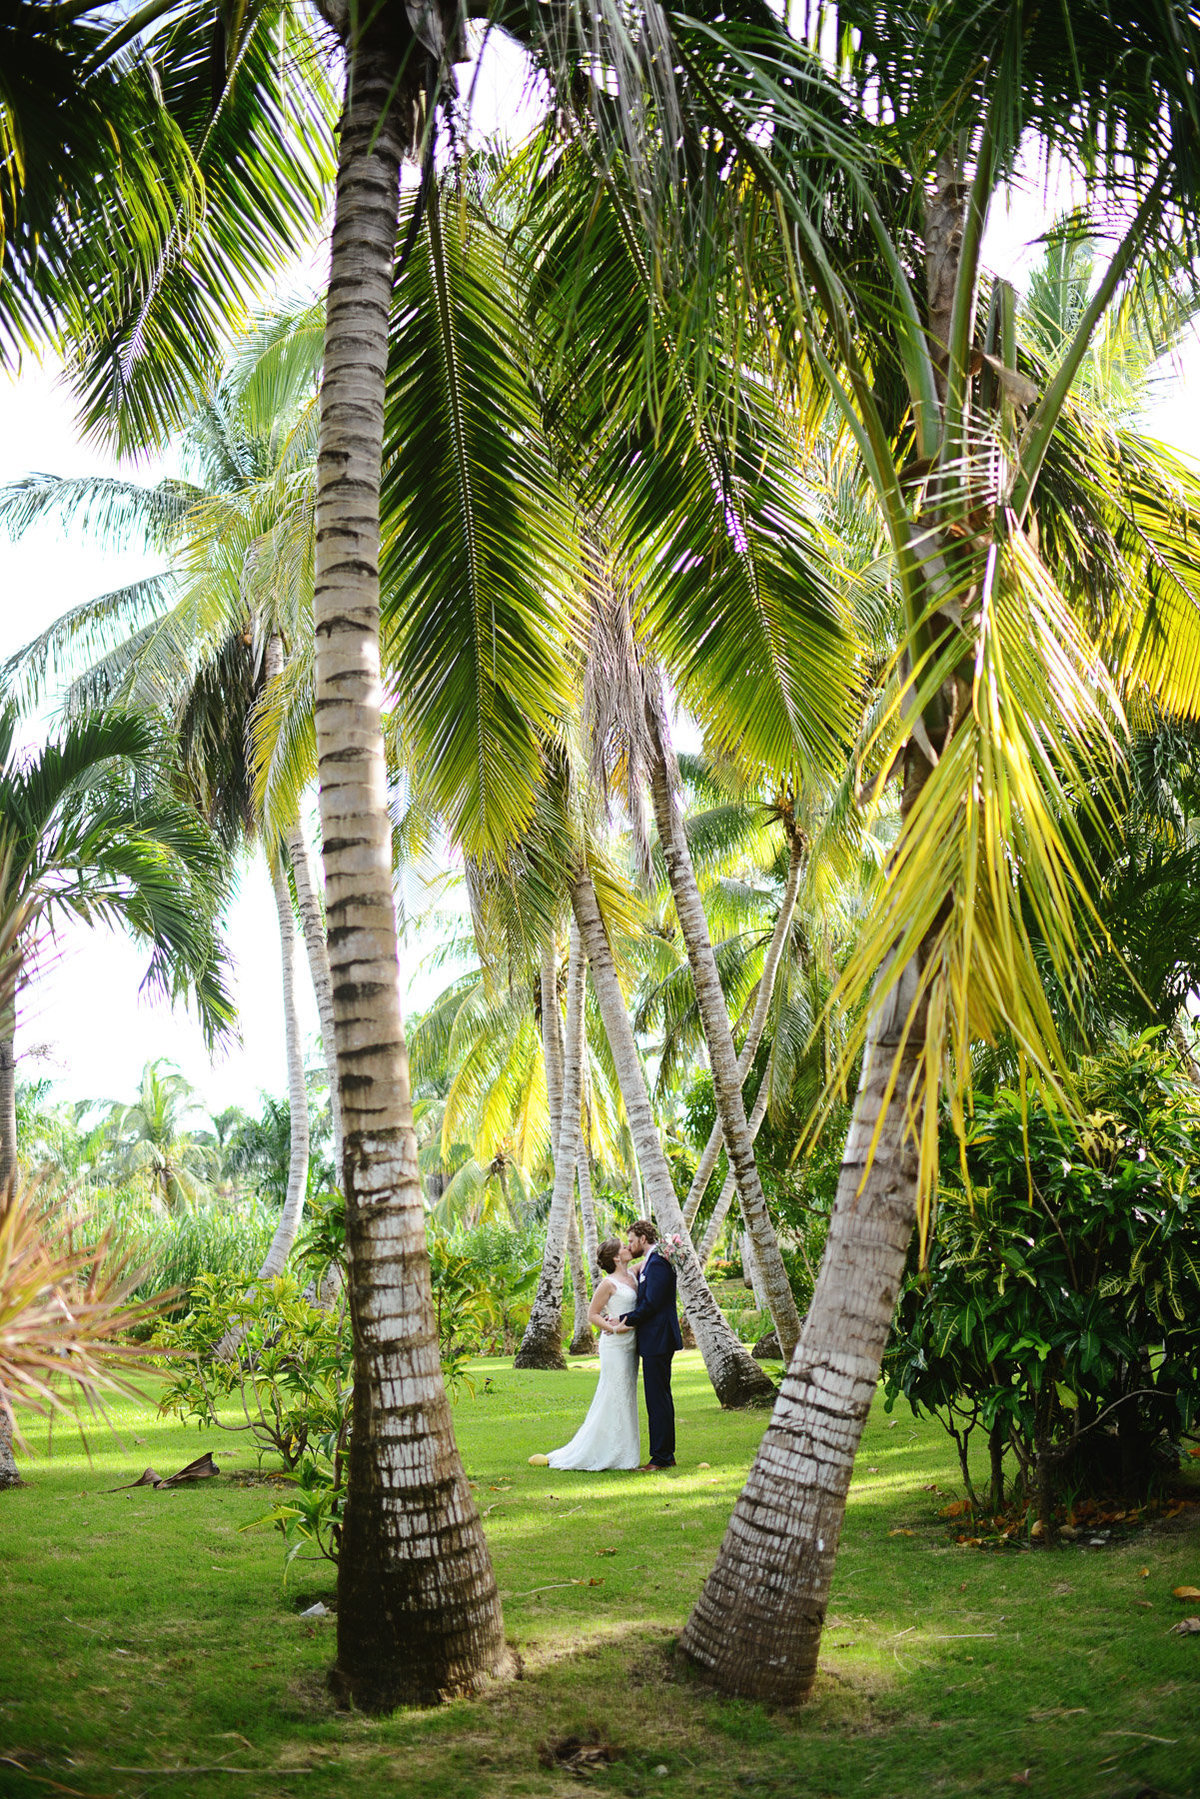 punta cana dominican republic resort wedding destination wedding photographer bryan newfield photography 35